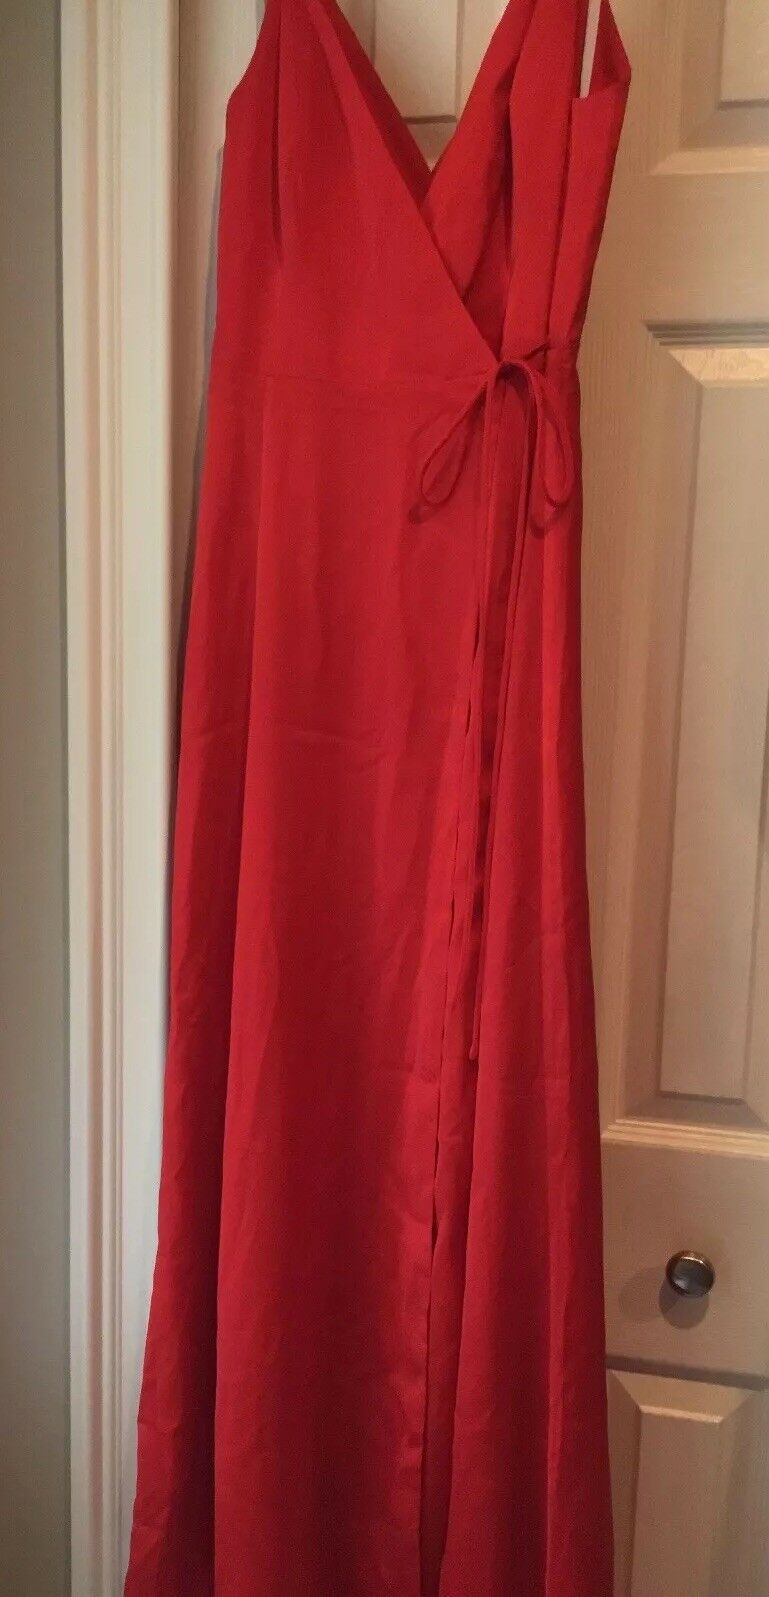 Free People + Fame And Partners The Bond Dress Dress Dress Size 10 NEW MSRP   229 Women Red cd2b0b